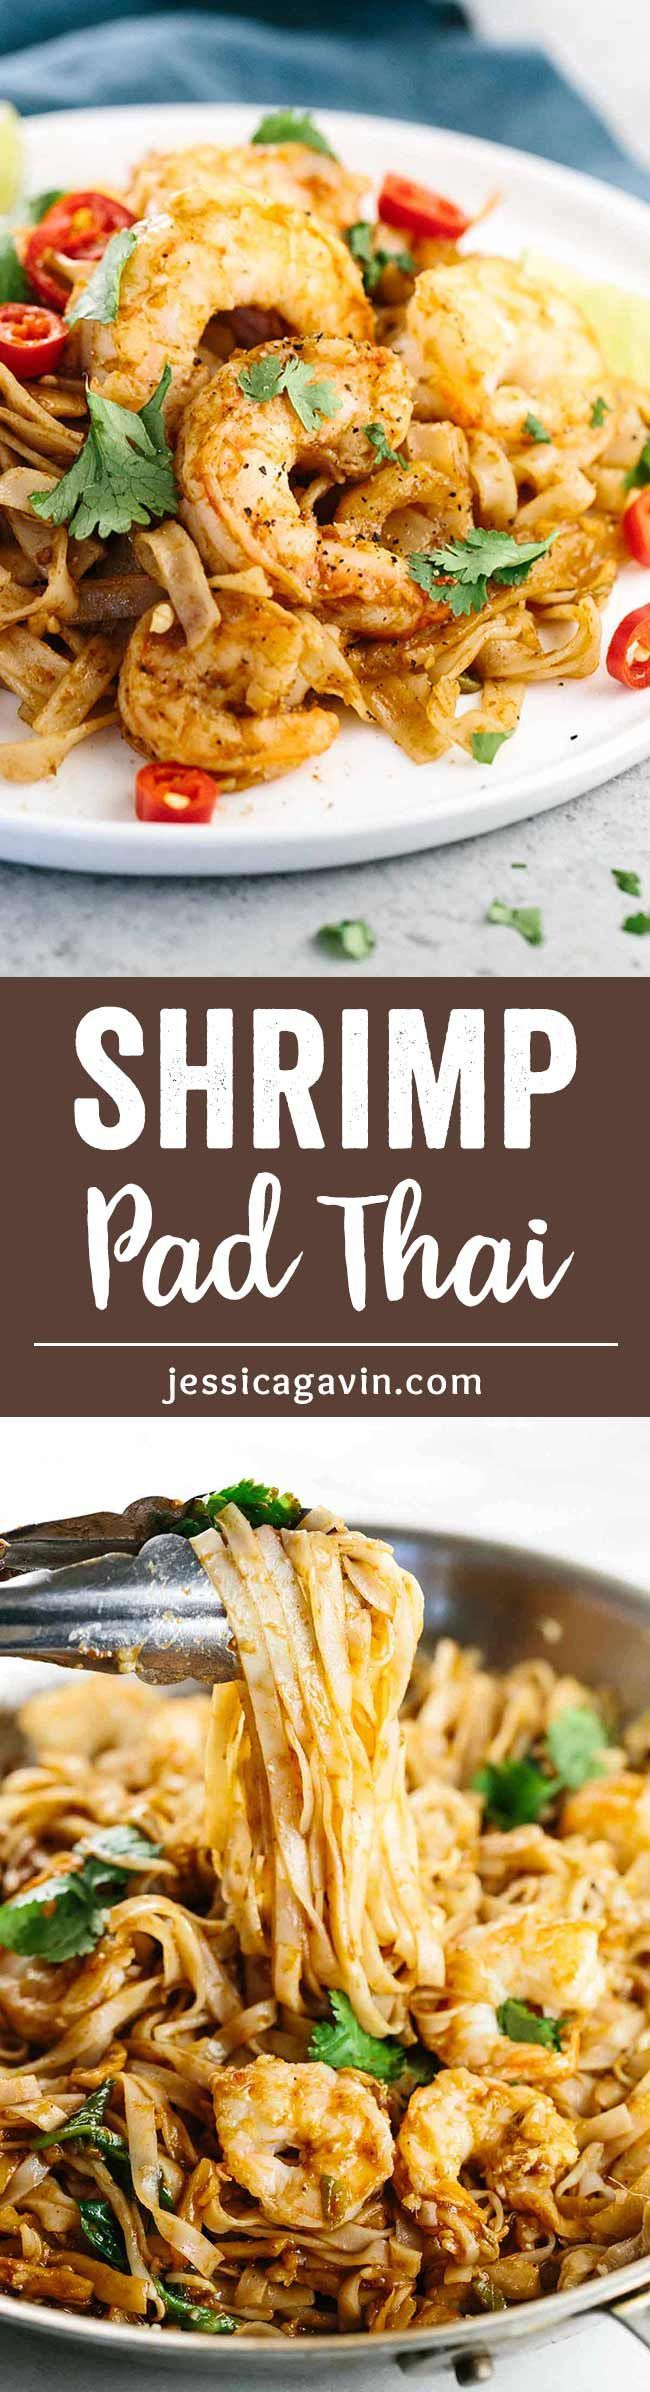 Key West Pink Shrimp Pad Thai Noodles - Chef crafted recipe with authentic Thai flavors, featuring fresh seafood and organic ingredients delivered to your home from Harbour Trading Co.  via @foodiegavin #HarbourTradingCo #ad | jessicagavin.com